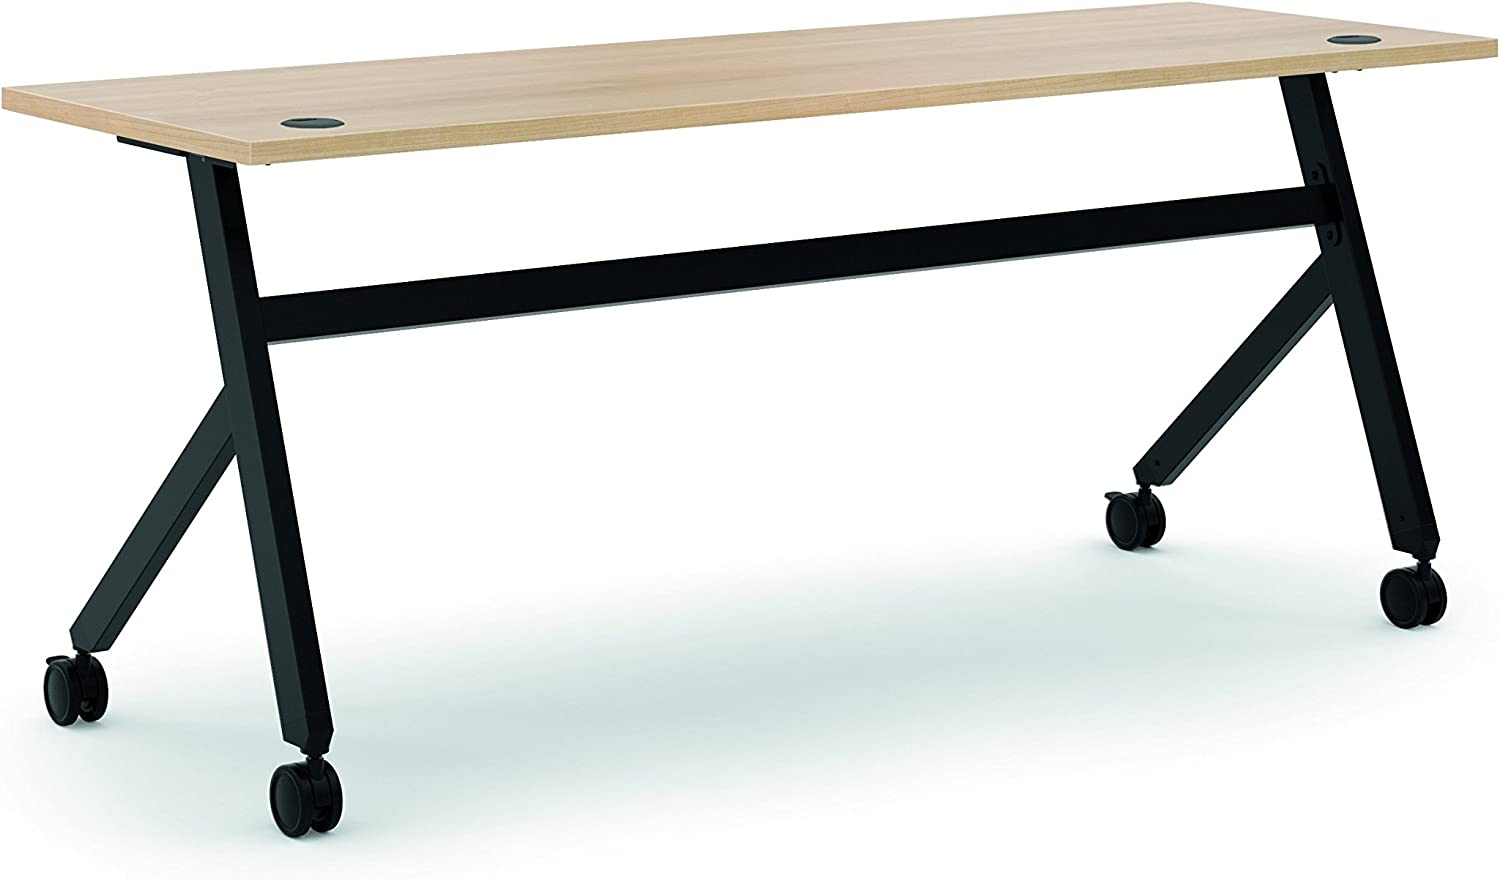 BSXBMPT7224XW Basyx by HON Wheat Laminate Multipurpose Table - 29.5  Table Top Width x 72  Table Top Depth x 1  Table Top Thickness - 24  Height - Steel